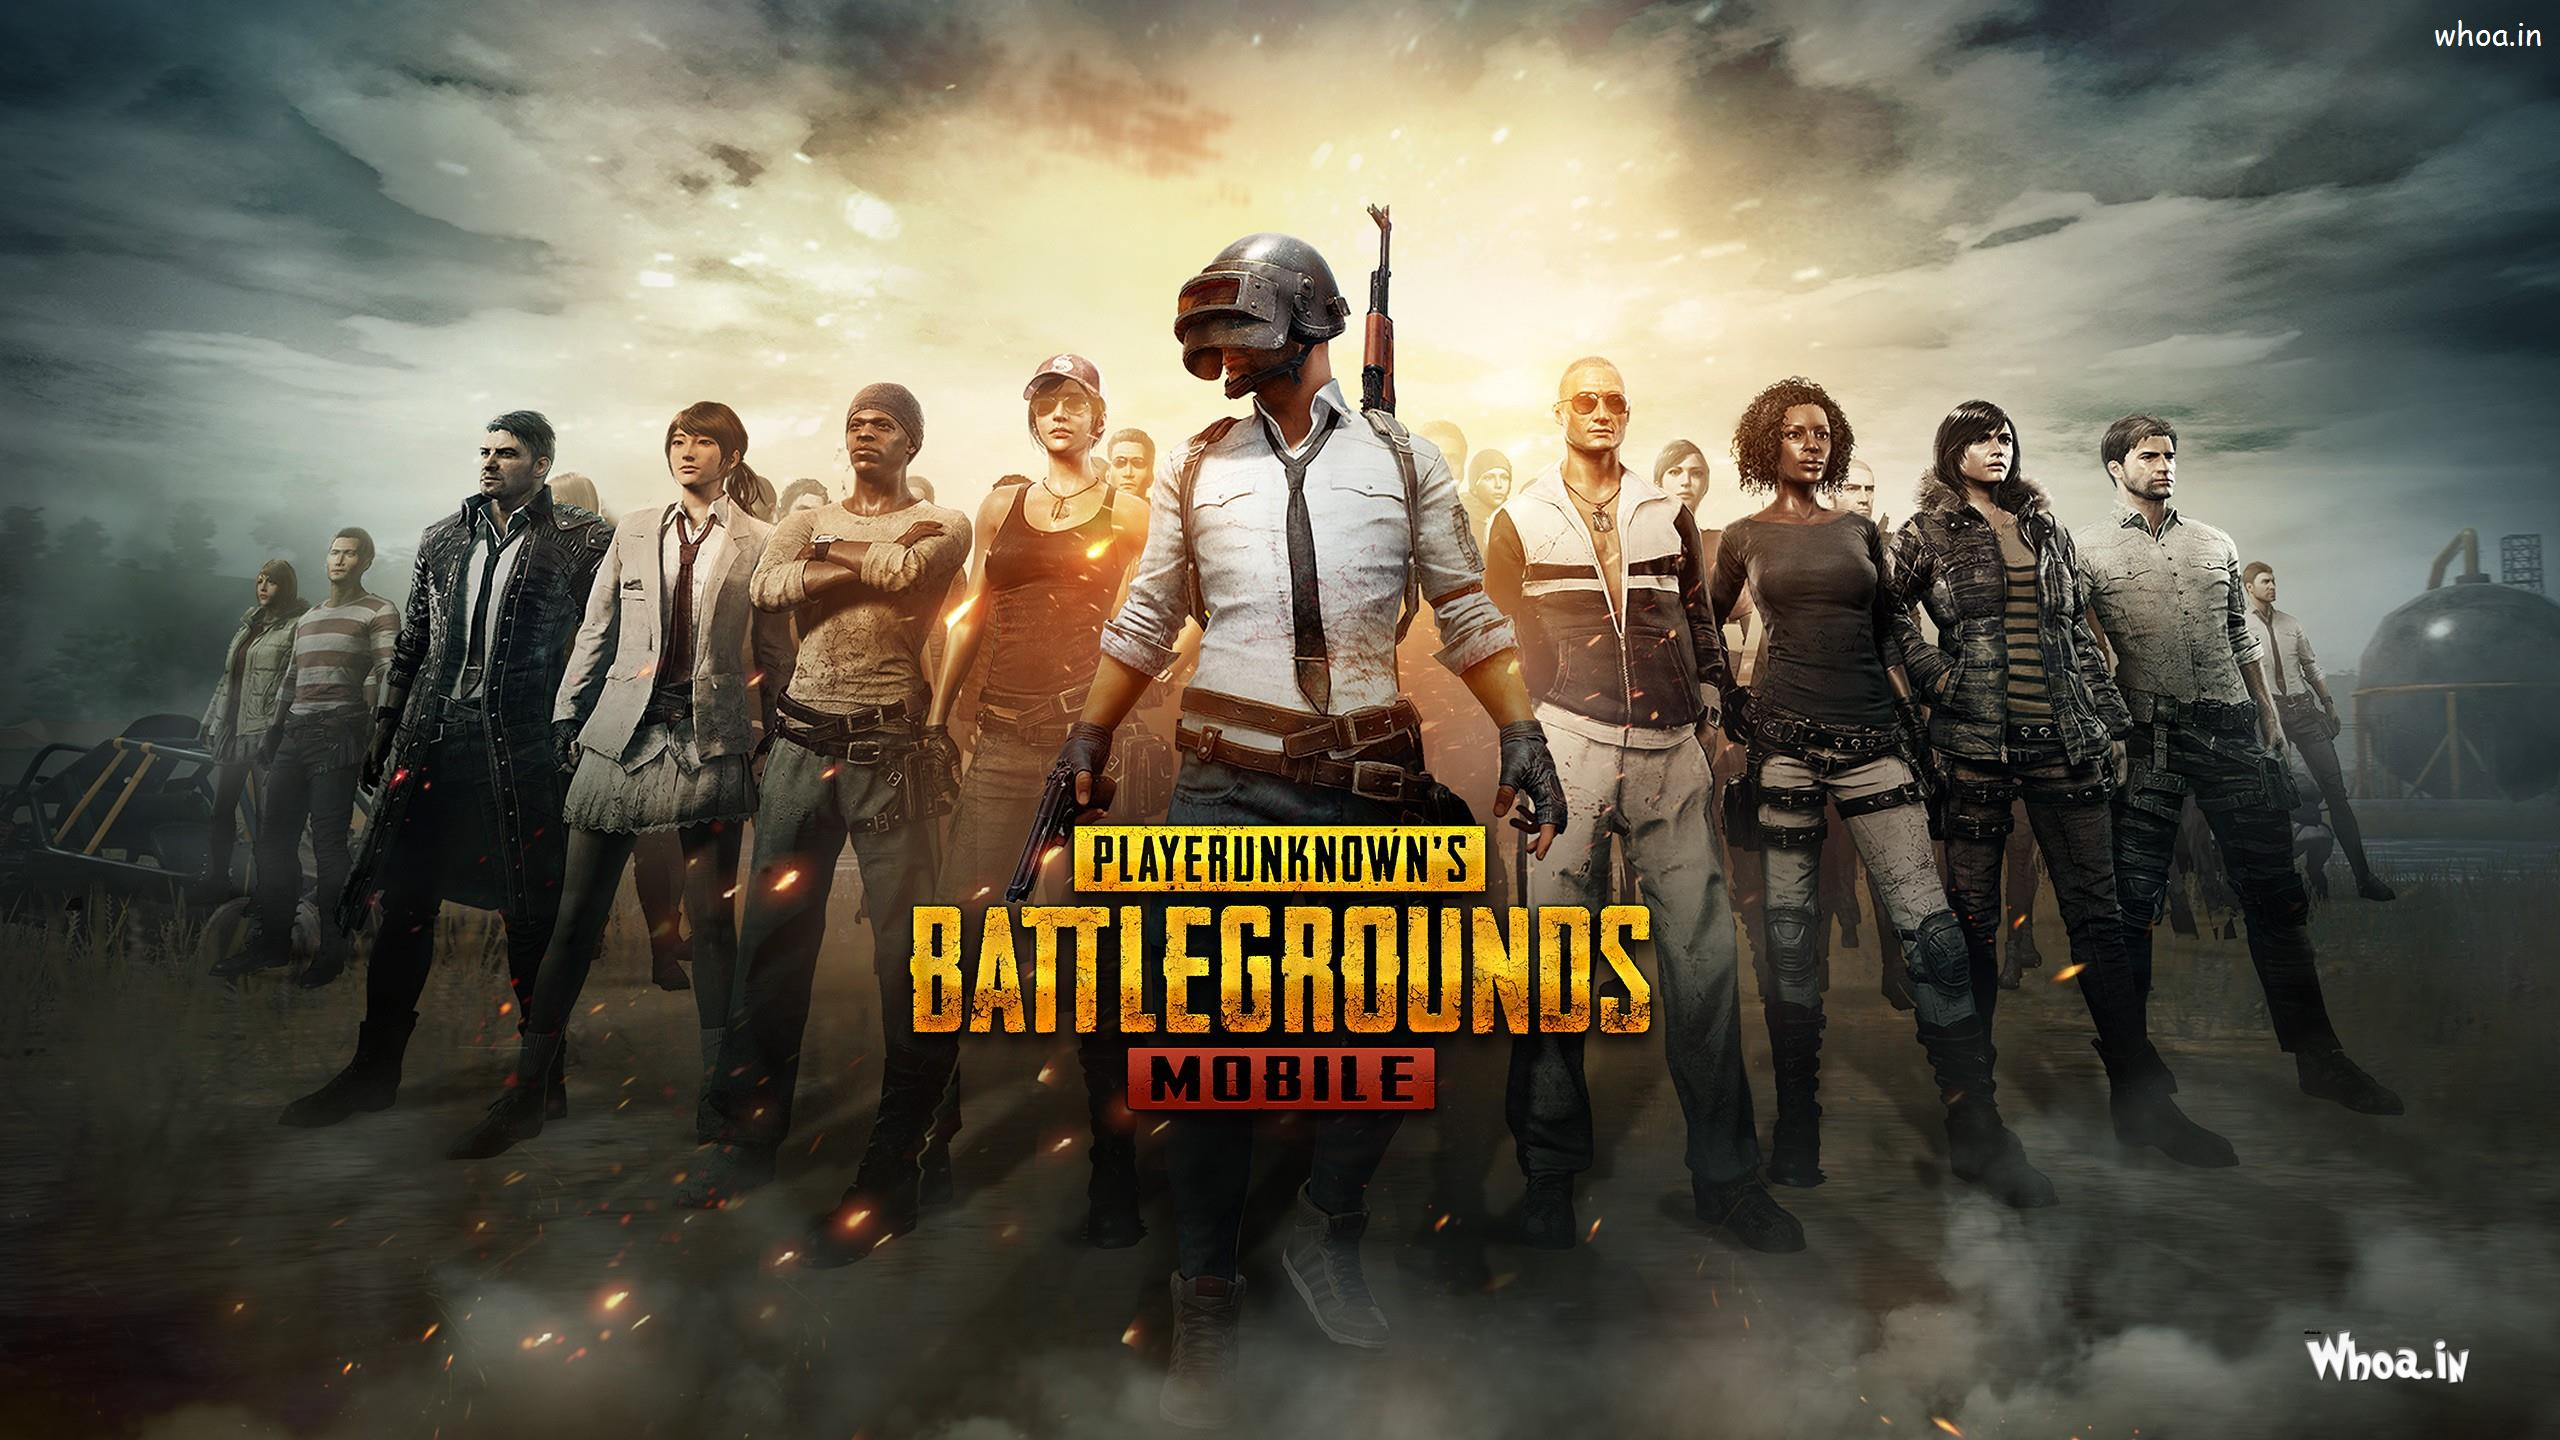 Pubg Game Art Wallpapers For Desktop And Mobiles 4 Pubg Game Wallpaper